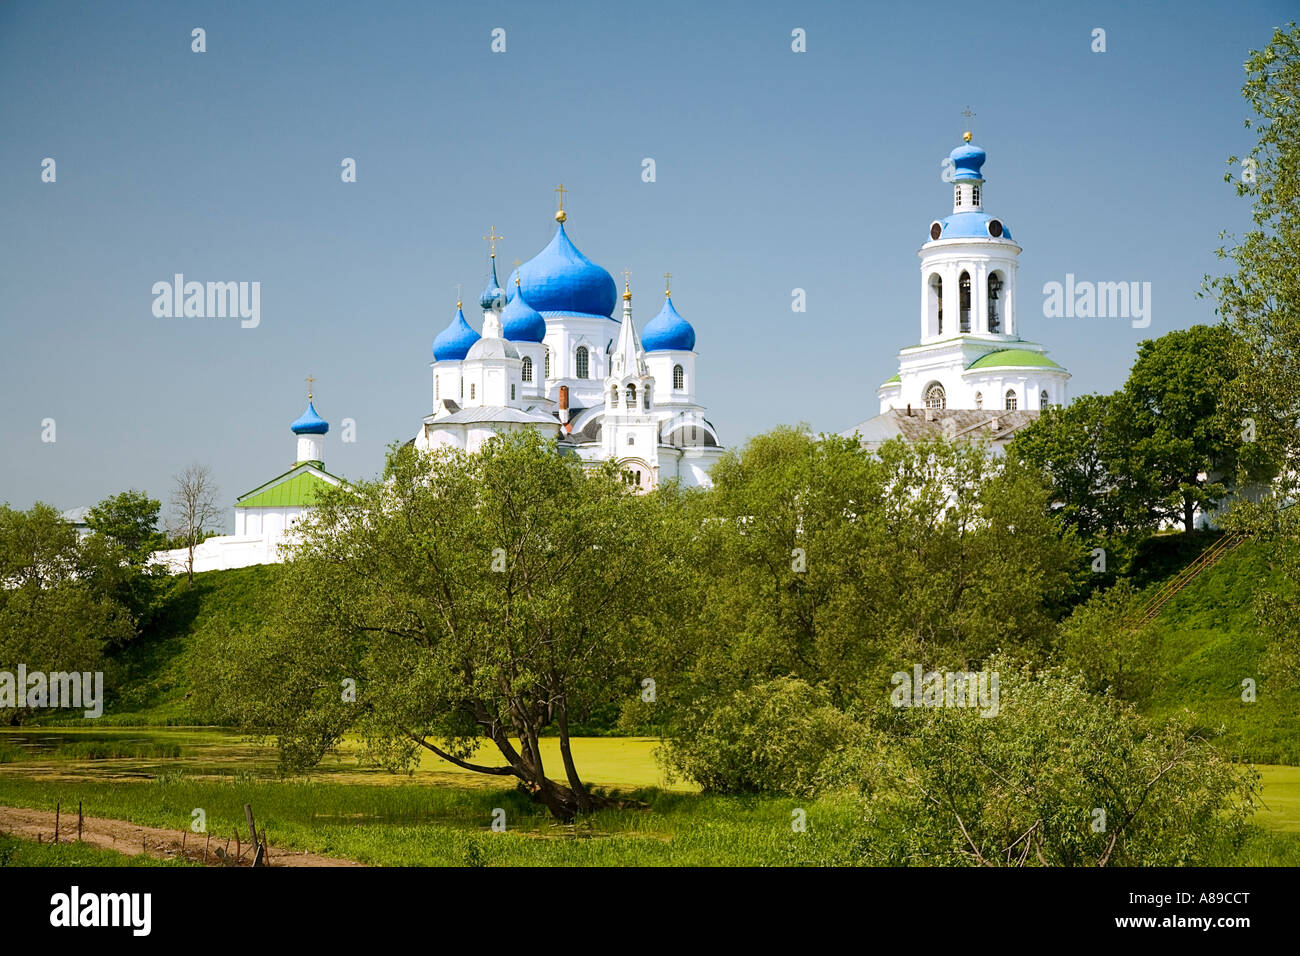 The church of the Nativity of the Holy Virgin and Assumption cathedral, Bogoljubovo, Vladimir, Russia - Stock Image